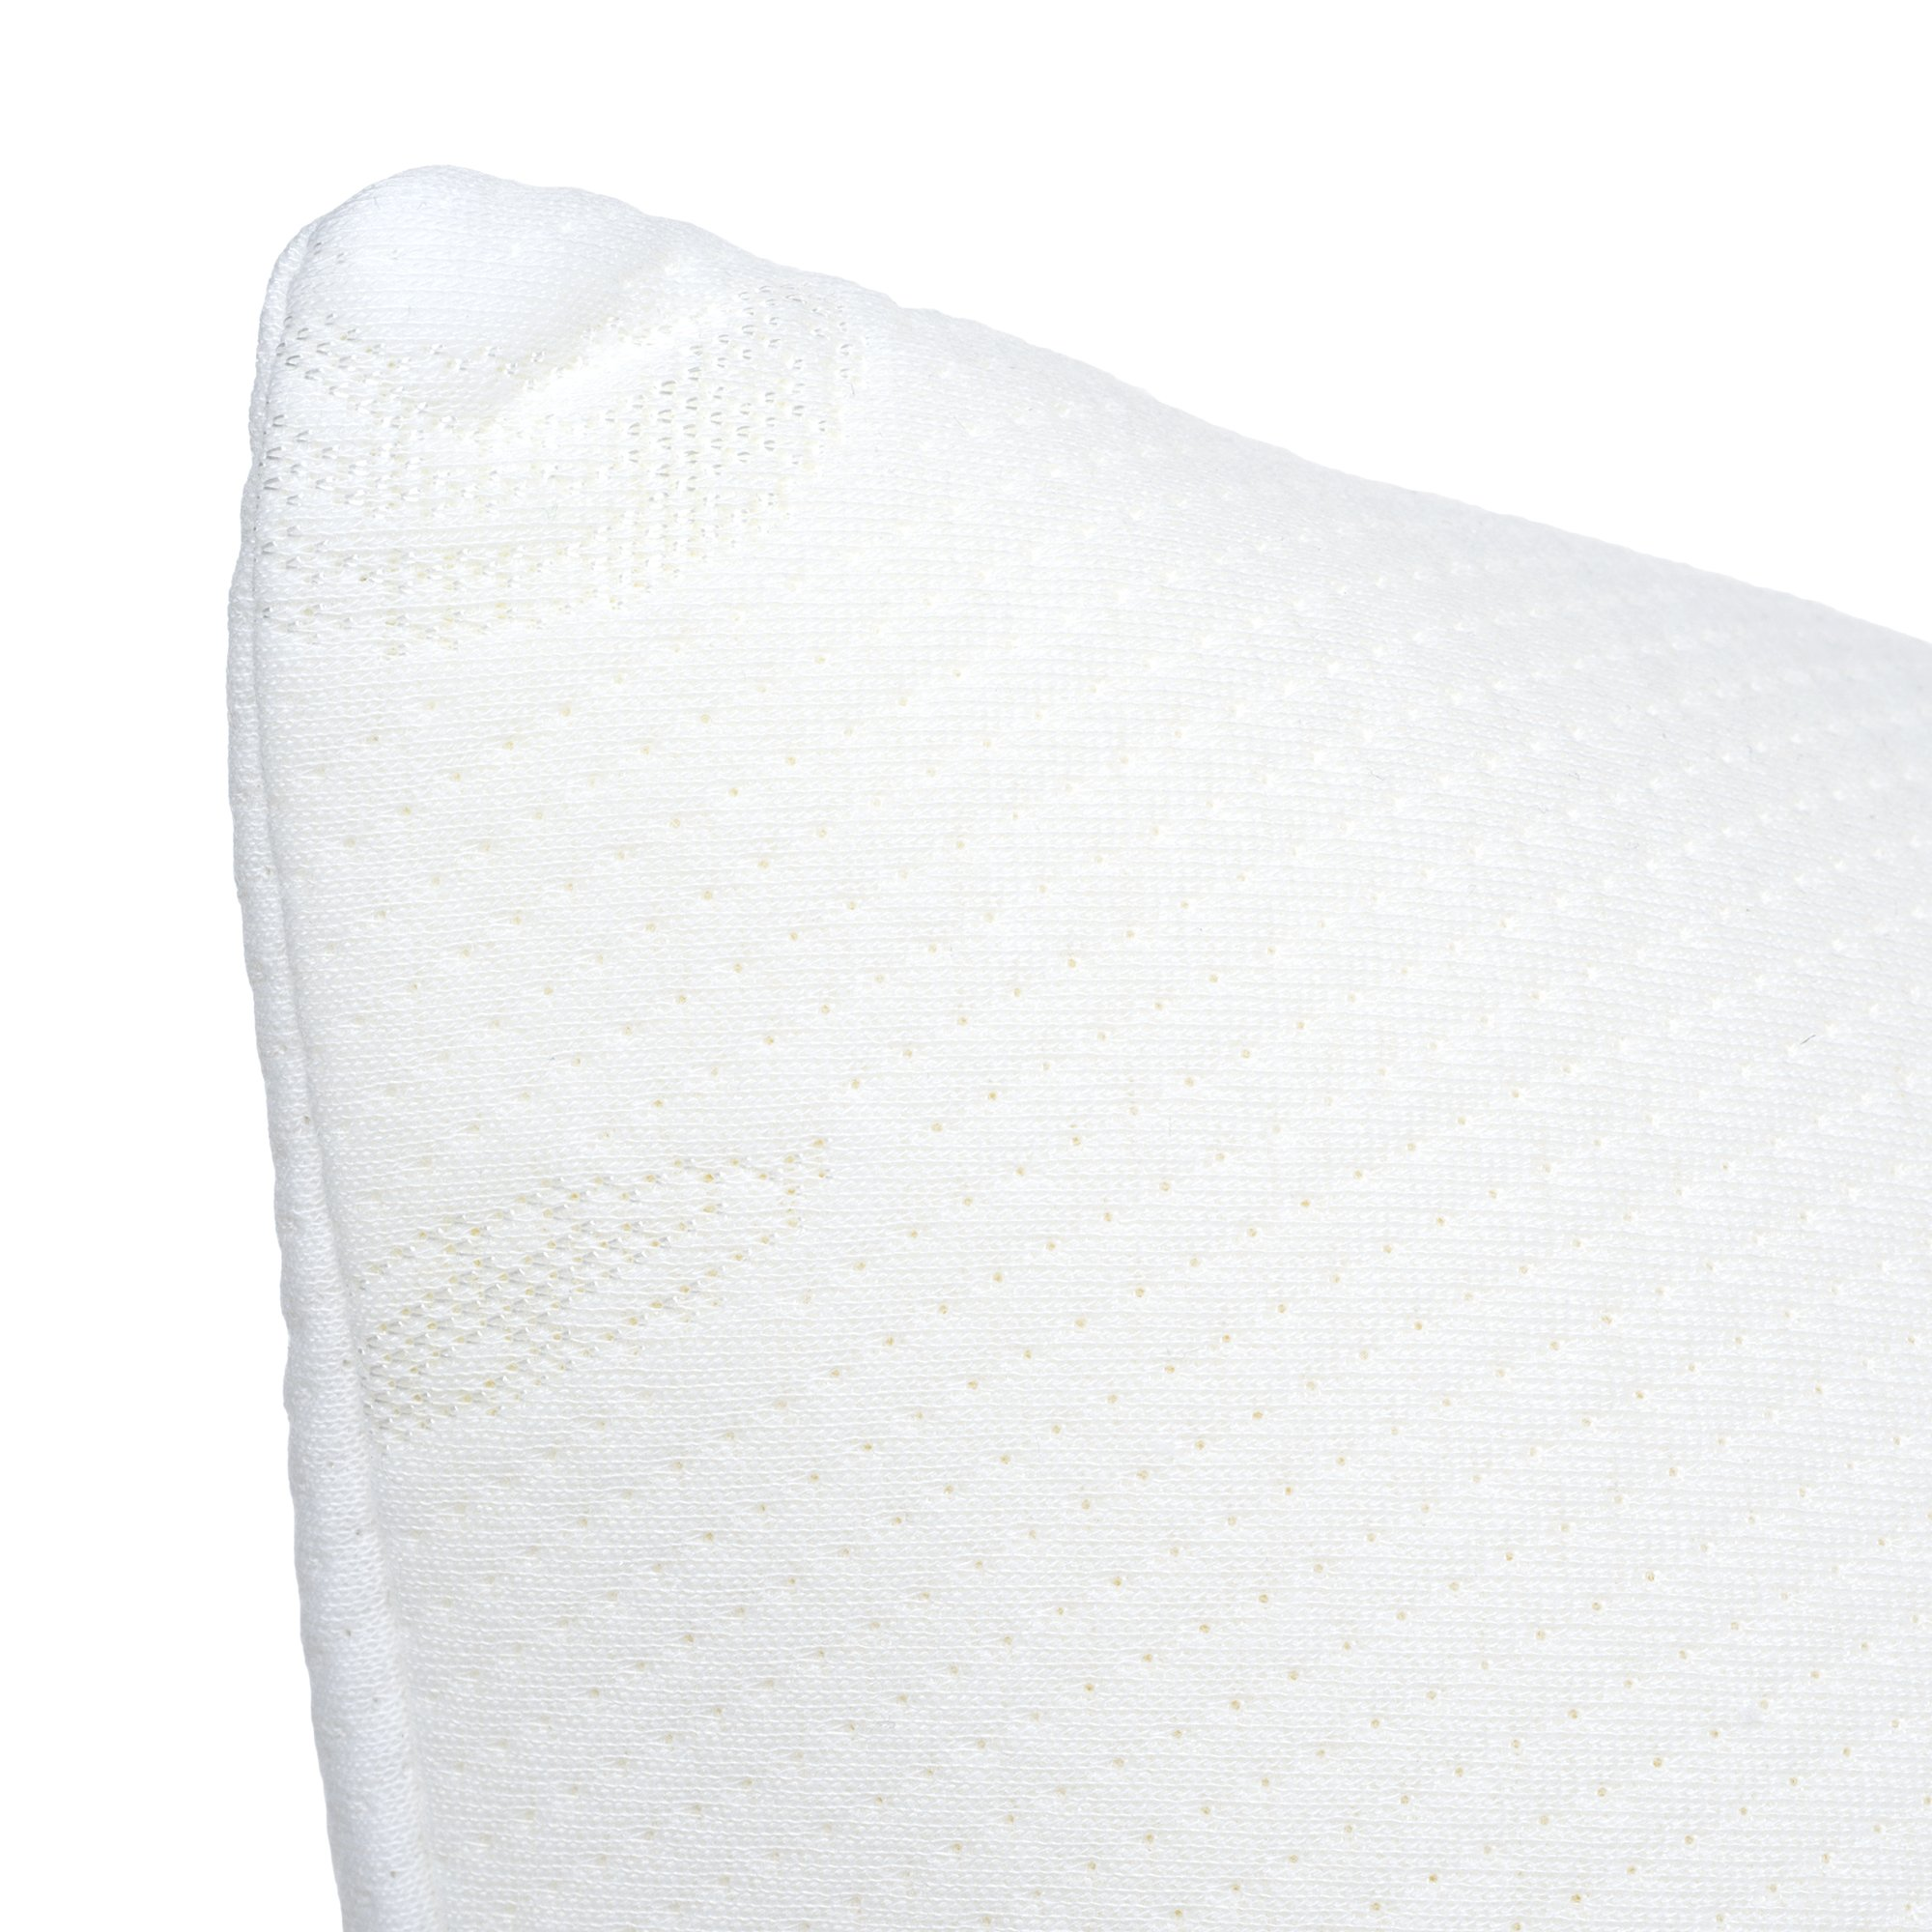 body hypoallergenic bigsleep foam kupon memory gallery pillow products beautyrest pillows simmons and